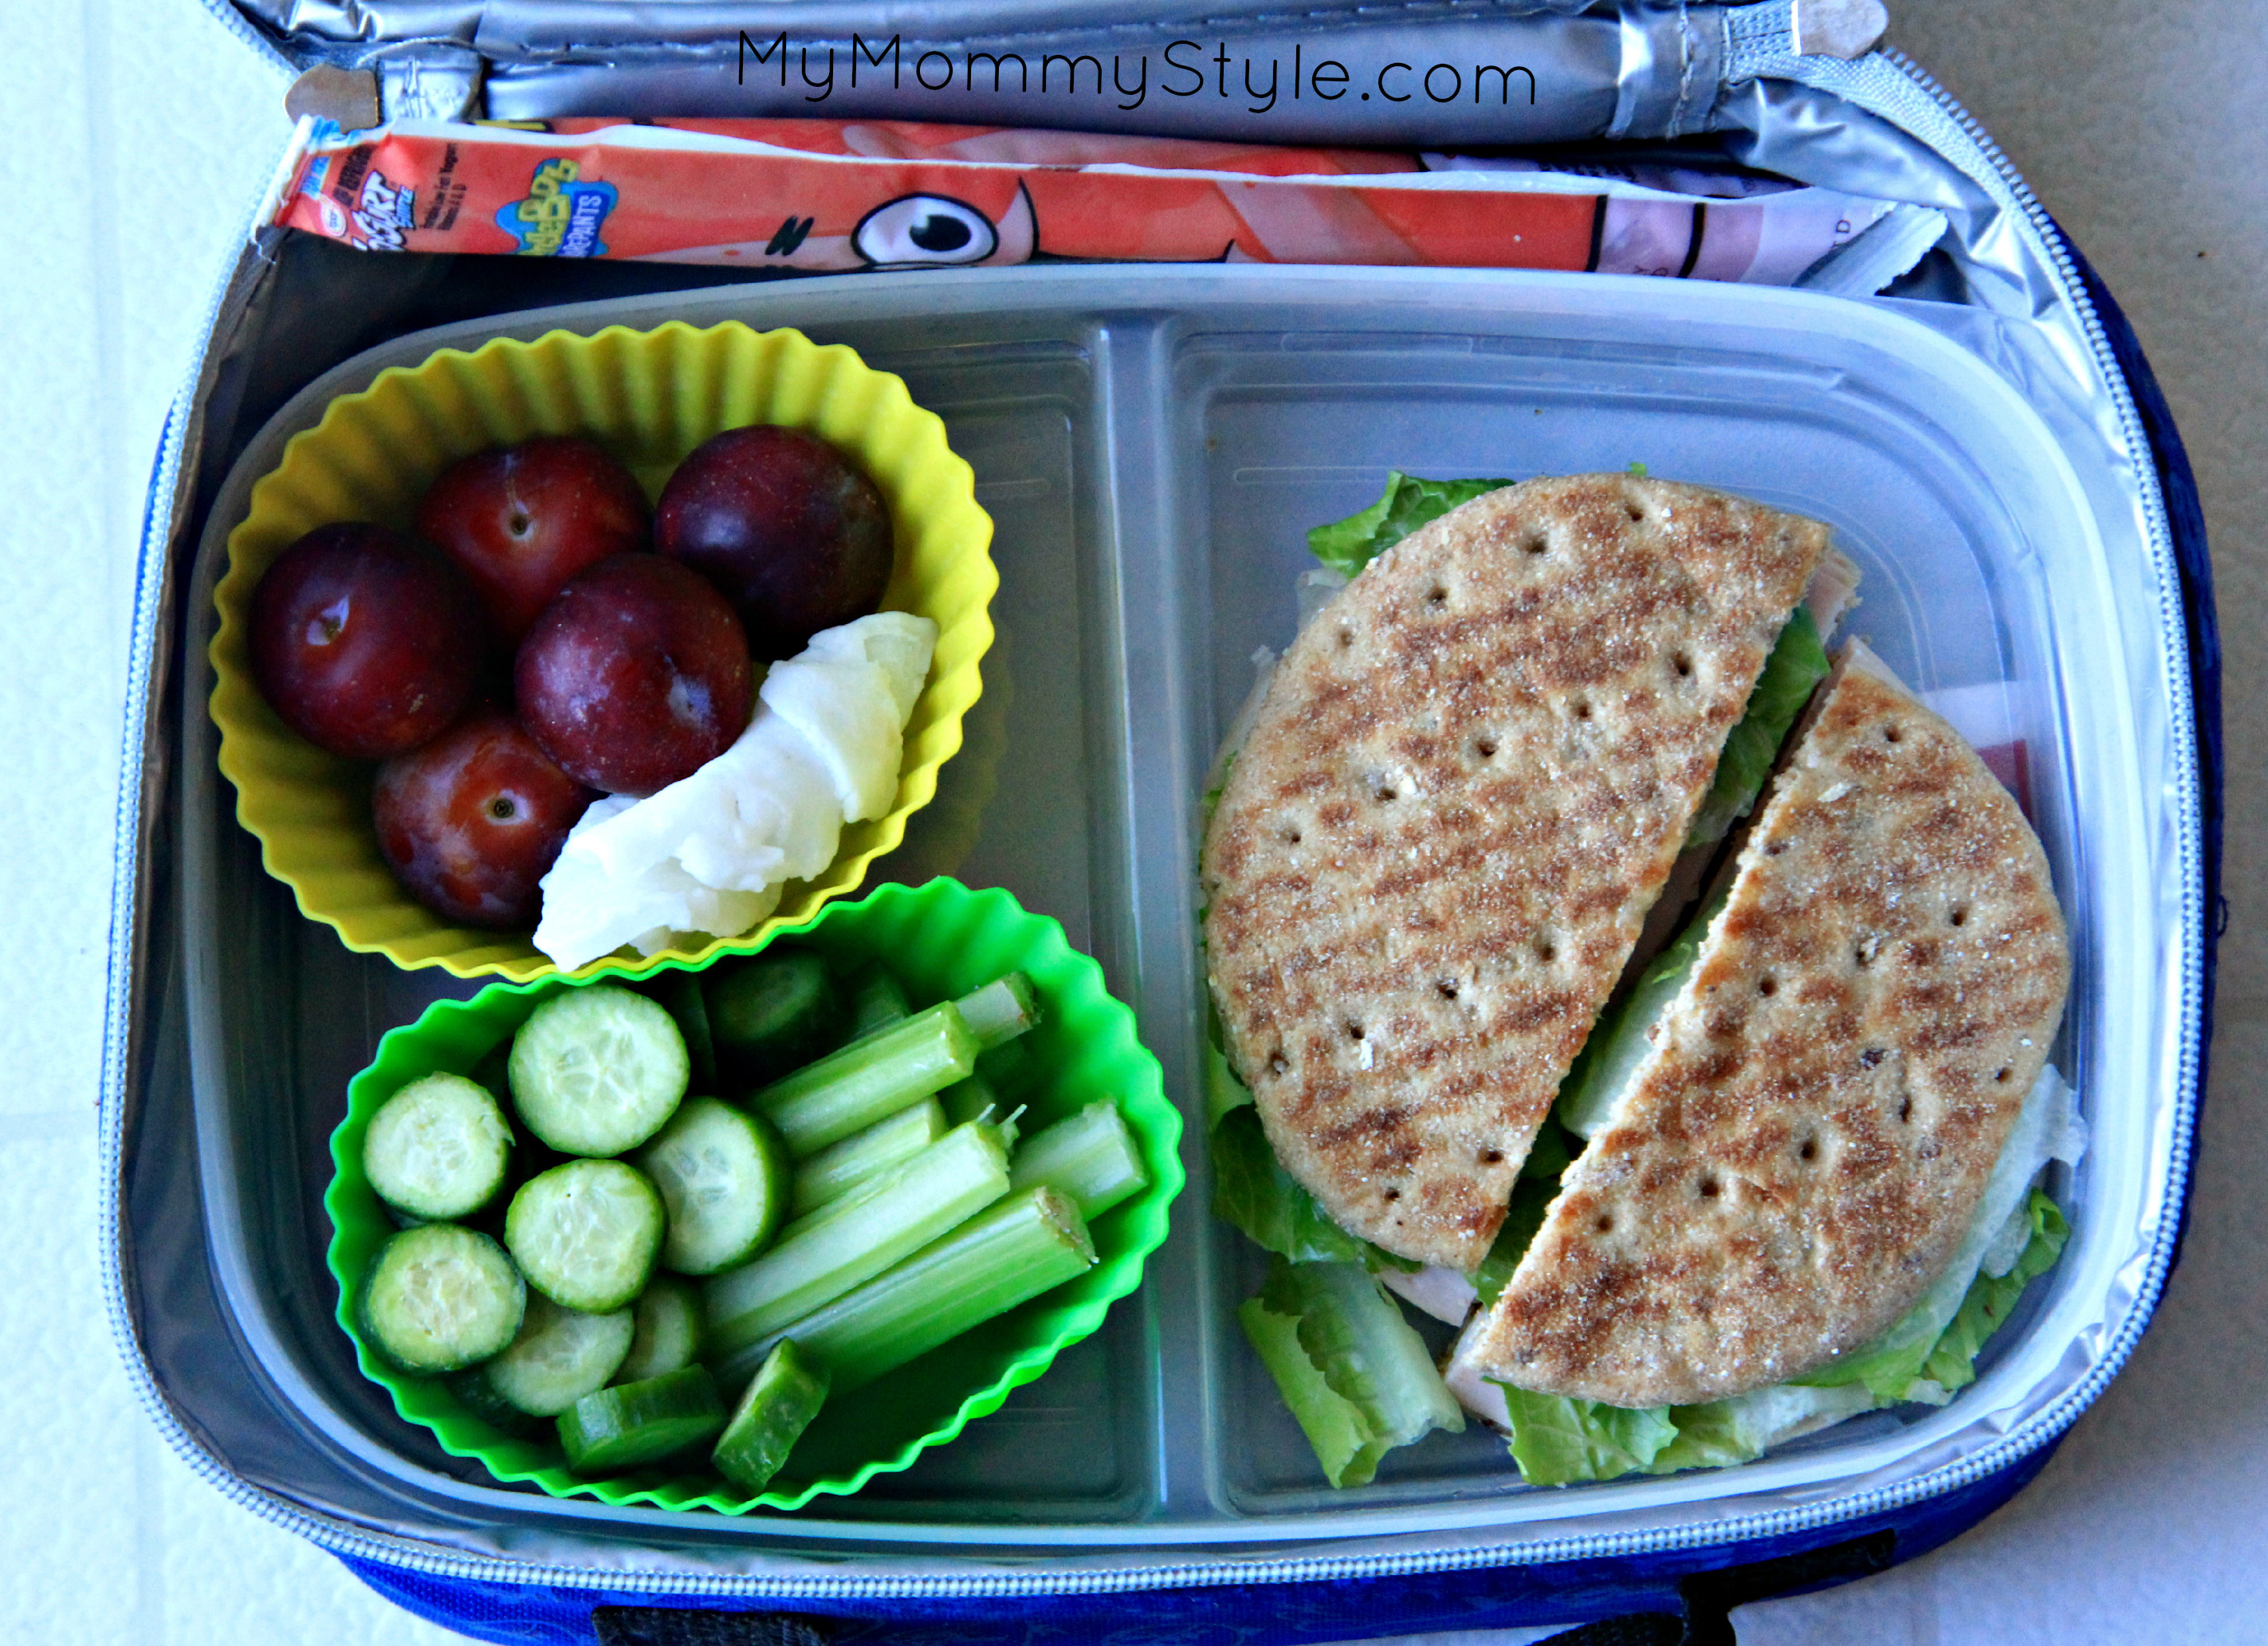 Healthy Foods For Kids' School Lunches  Healthy Lunch Box Lunches CCE Suffolk County Family